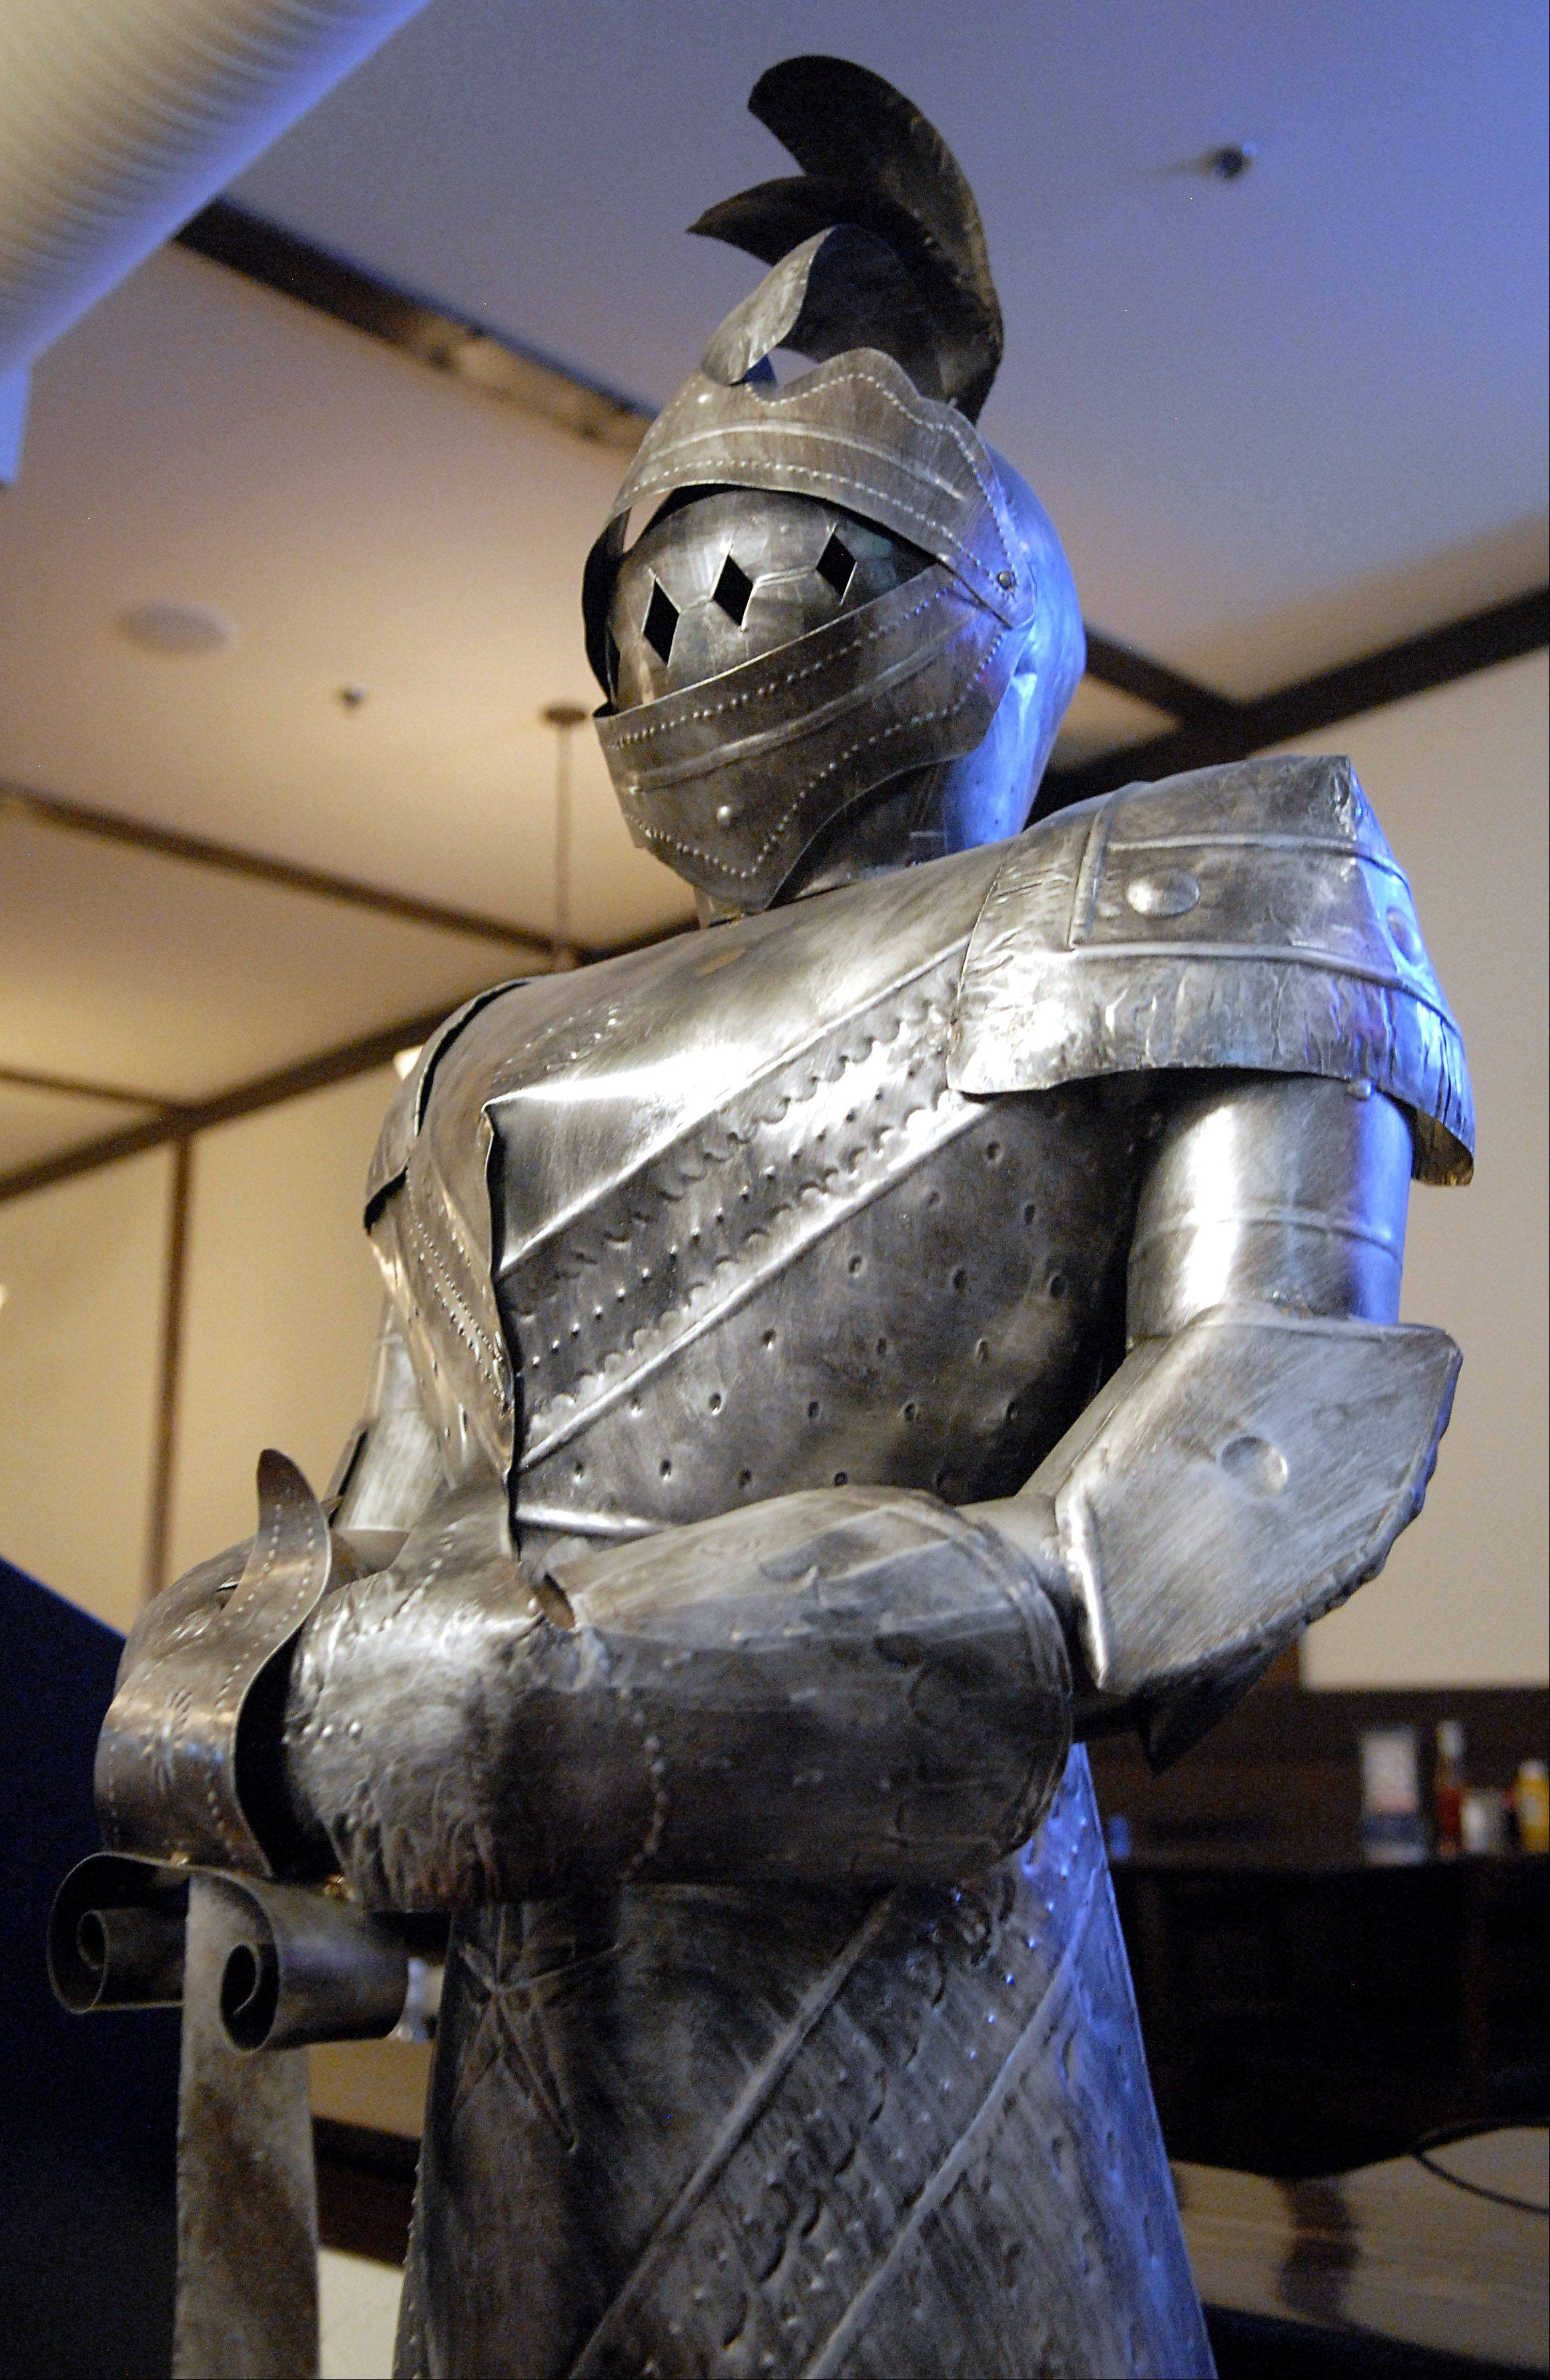 A suit of armor greets patrons as they enter the White Stag Tavern in St. Charles.